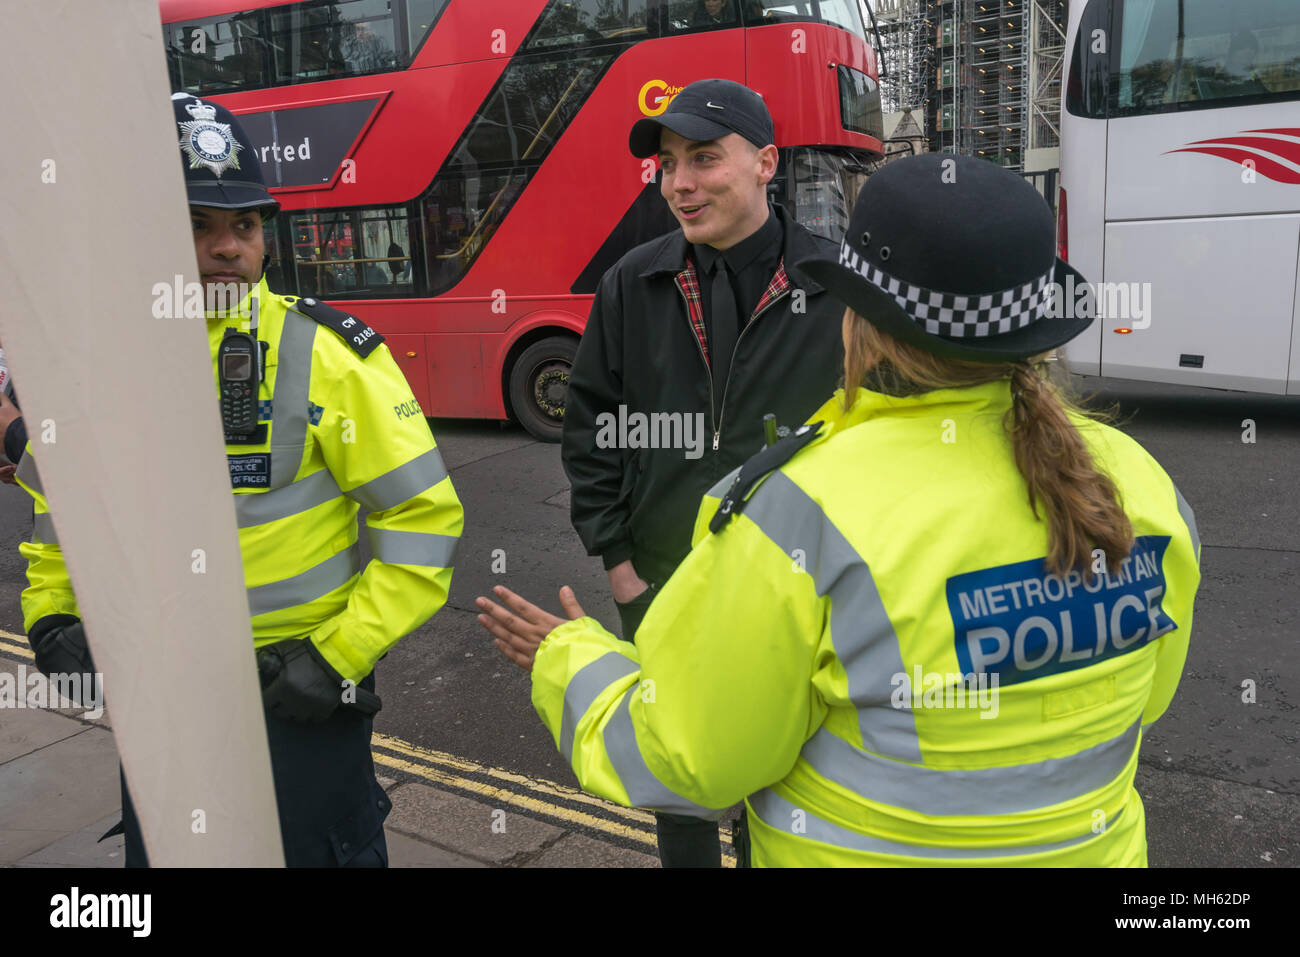 London, UK. 30th April 2018.  Police ask a man who has come to cause trouble to leave the protest in support of the petition calling for an end to the deportations of migrants in the 'Windrush generation' who arrived in Britain between 1948 and 1971. It calls on the government to change the burden of proof which means they are now required to prove their right to remain, and to provide compensation for any loss and hurt.. re for many years, paying taxes and raising fa Credit: Peter Marshall/Alamy Live News - Stock Image